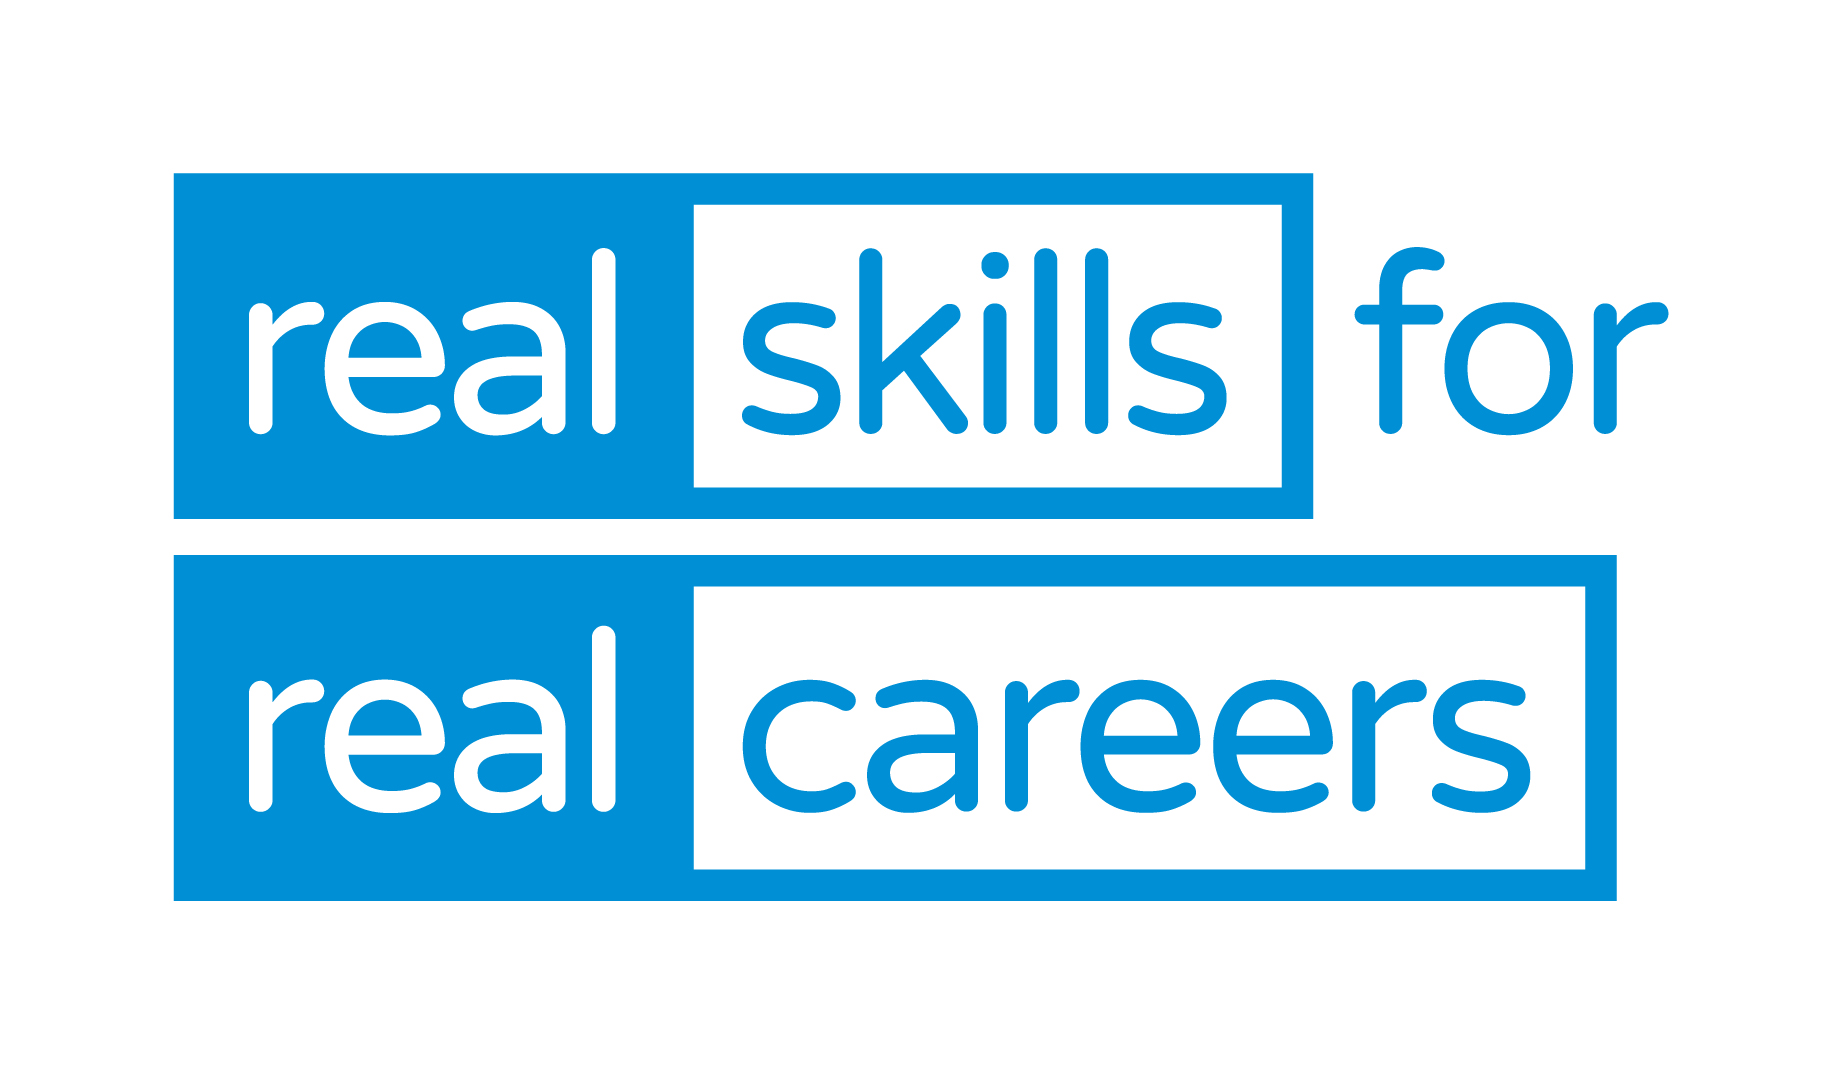 real skills for real careers